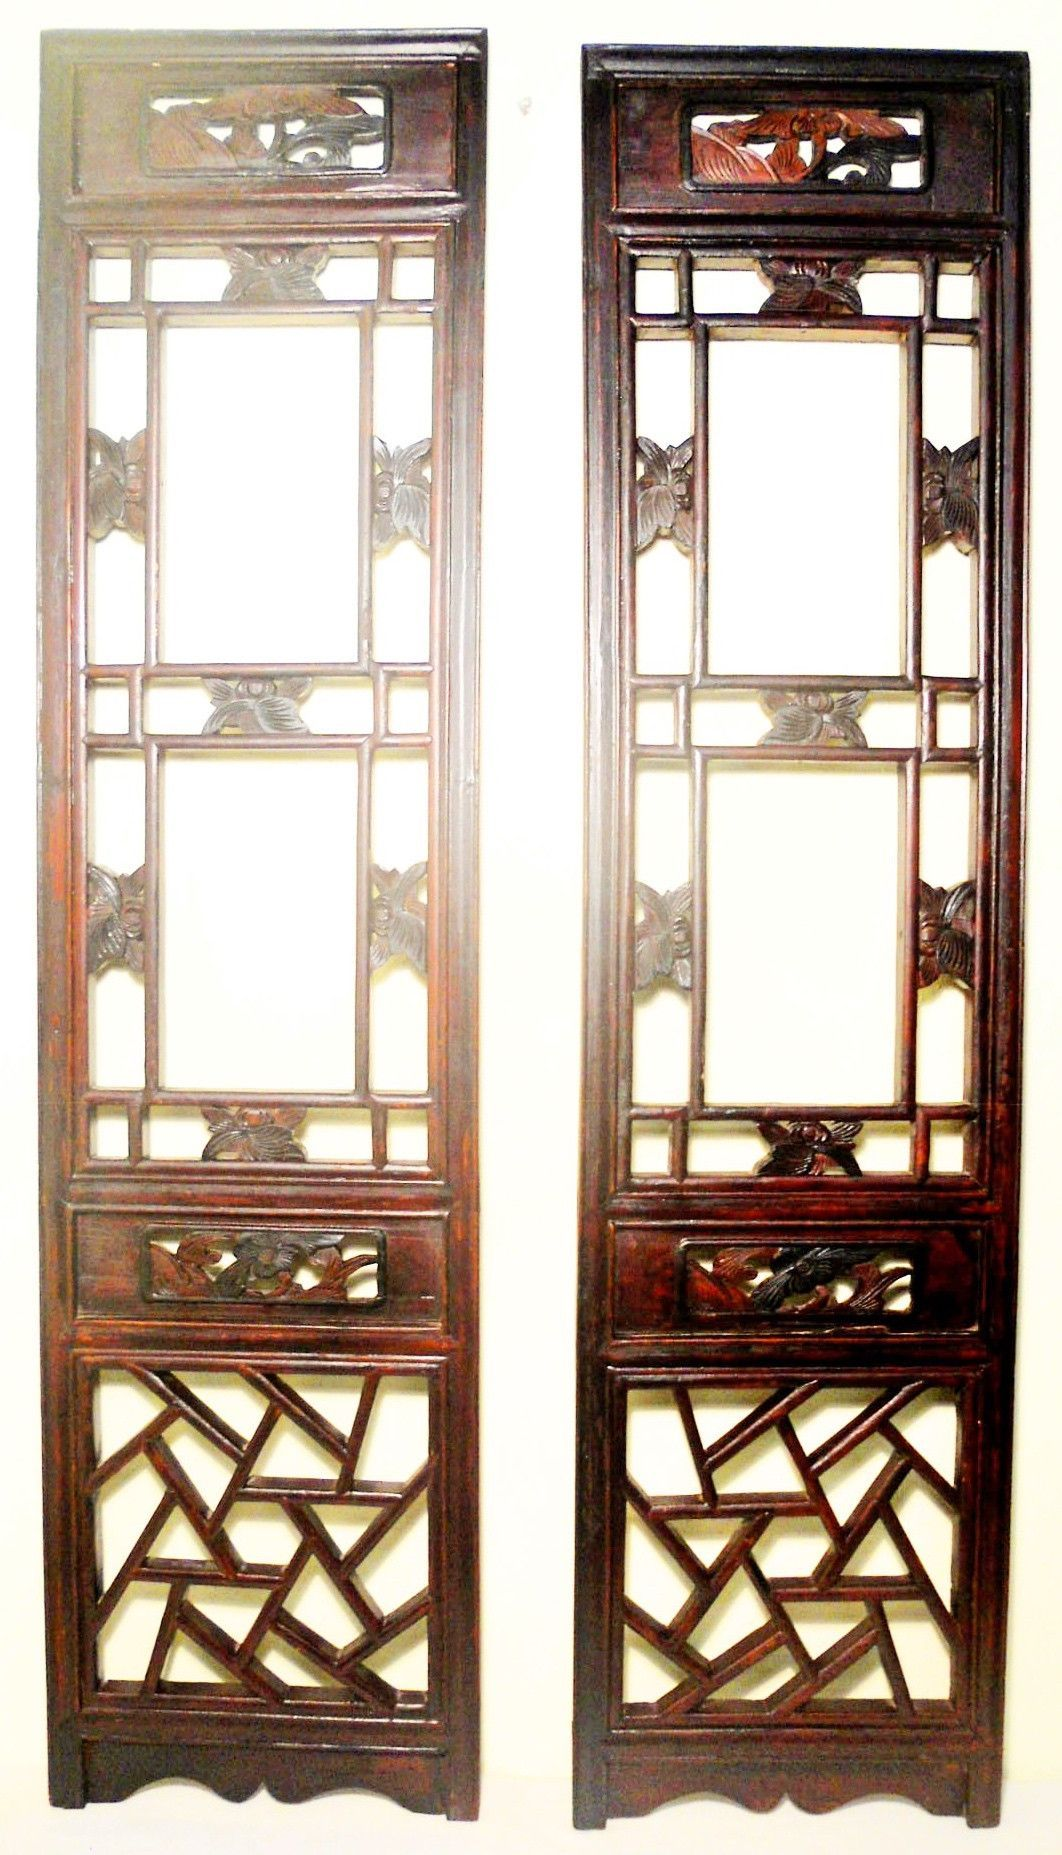 Antique Chinese Screen Panels (2535)(Pair) Cunninghamia Wood, Circa 1800-1849